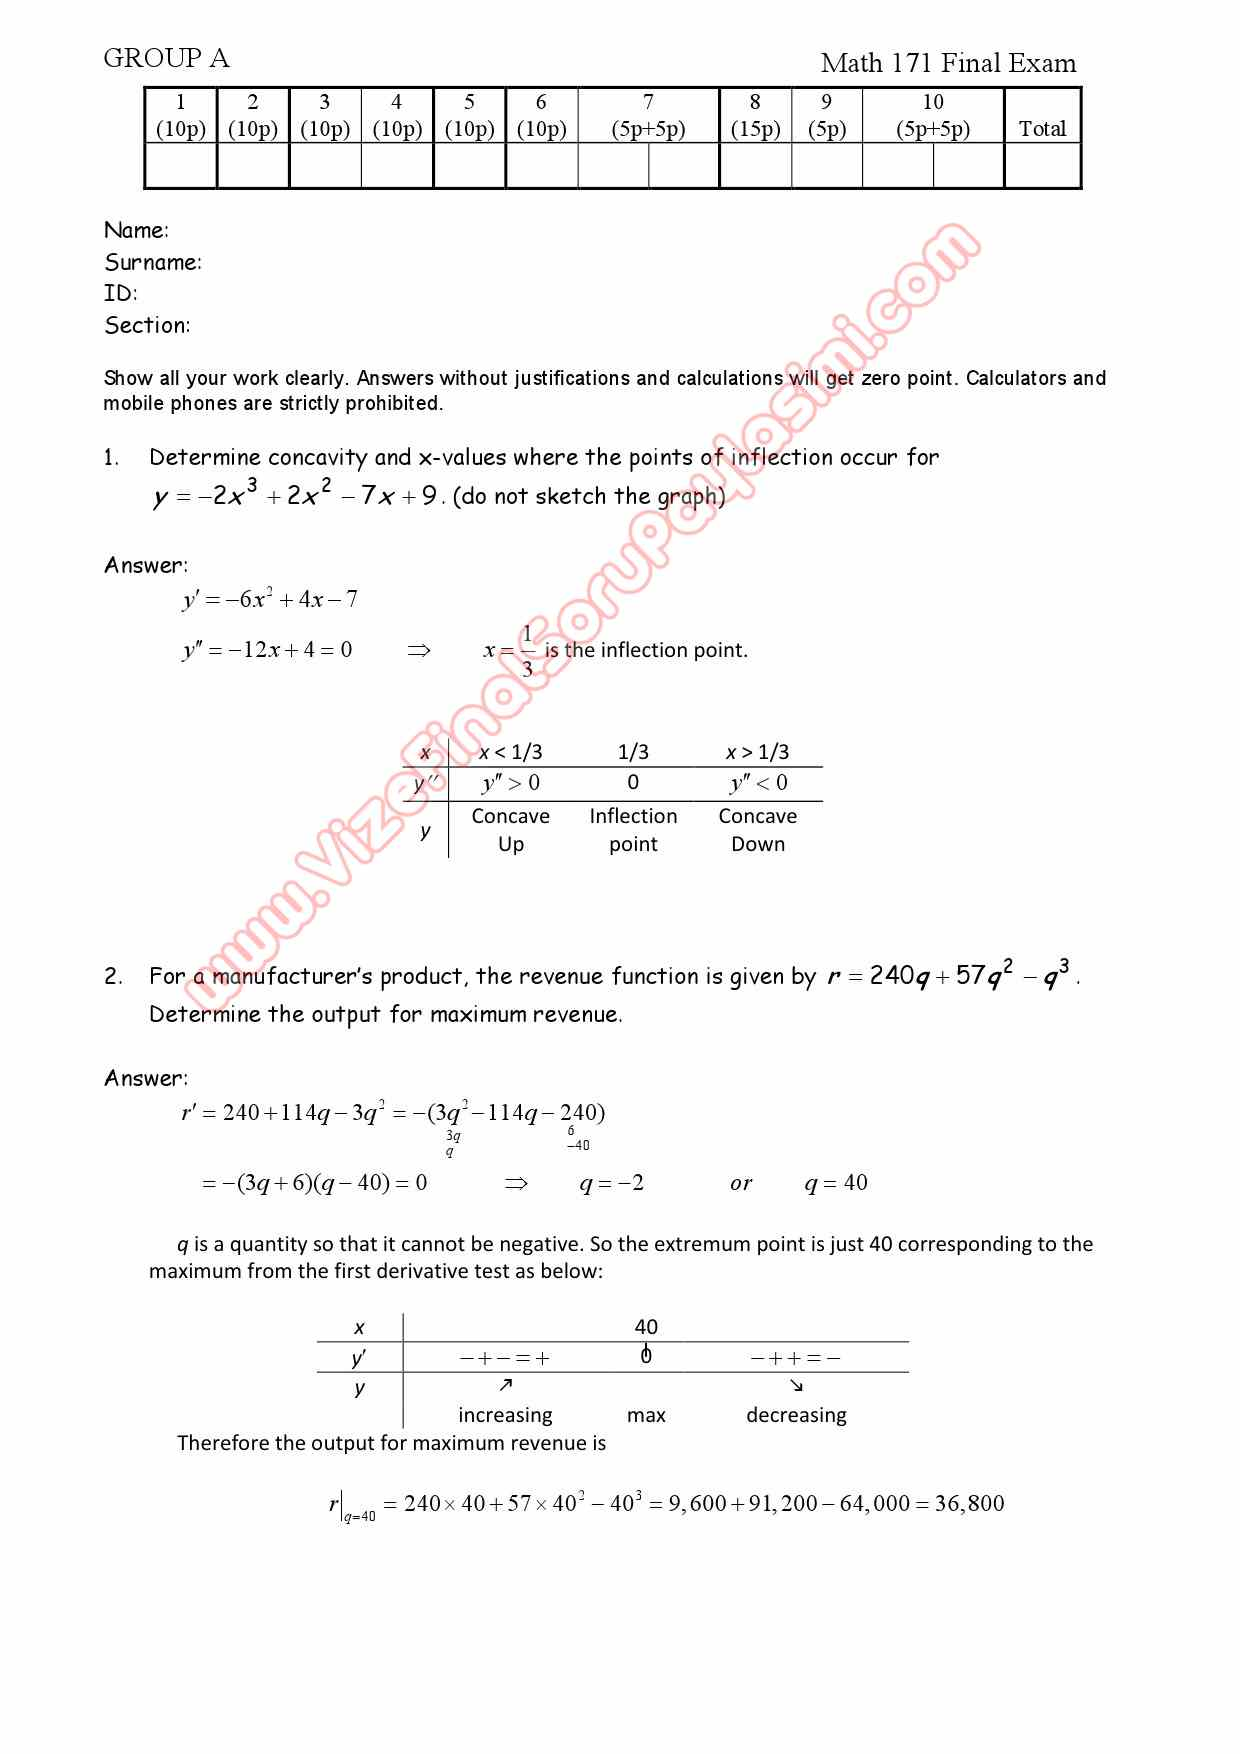 Calculus for Business and Economics-1 Final Exam Questions and